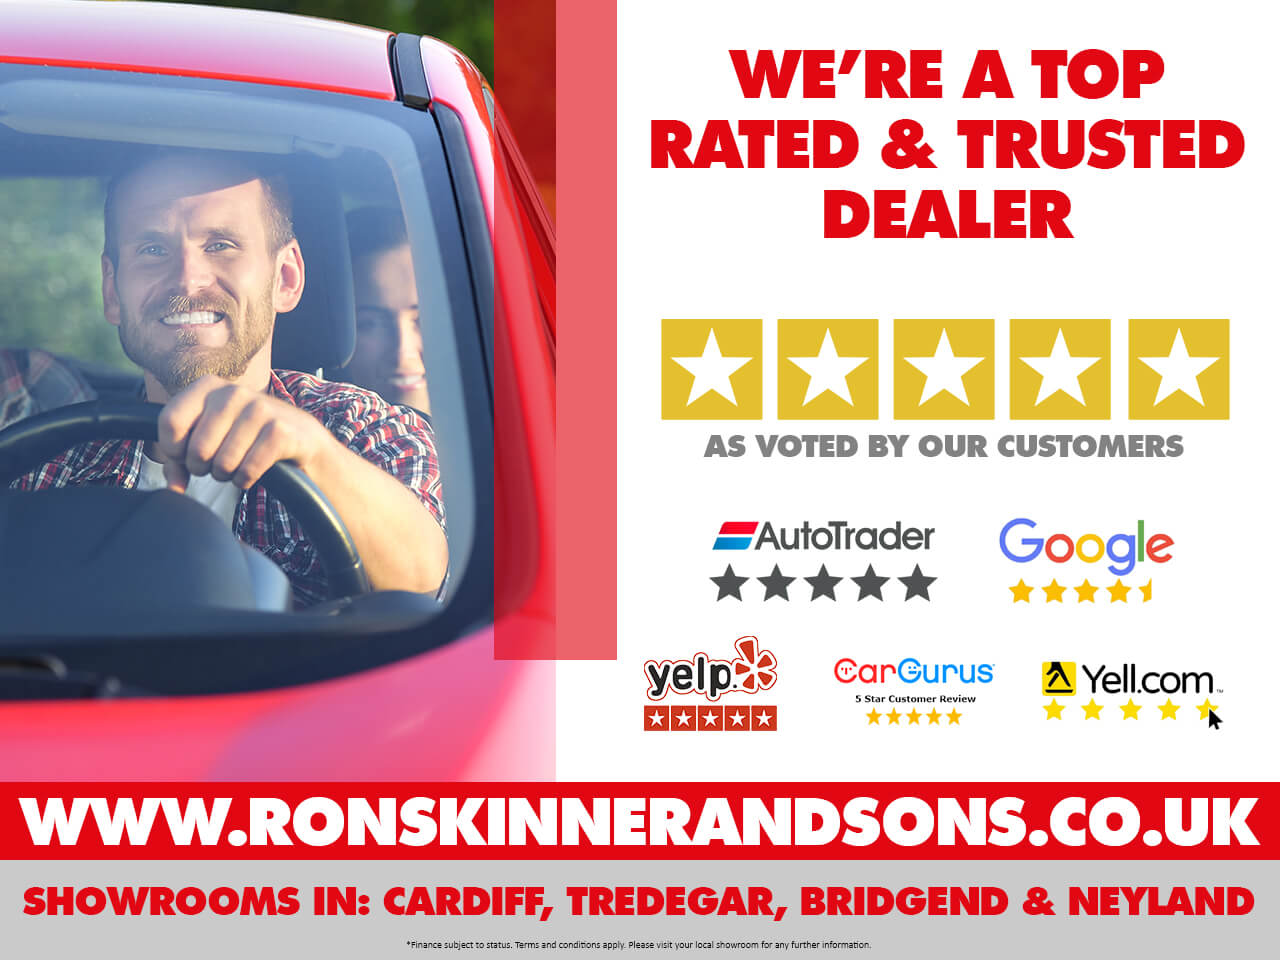 CITROEN C4 GRAND PICASSO at Ron Skinner and Sons